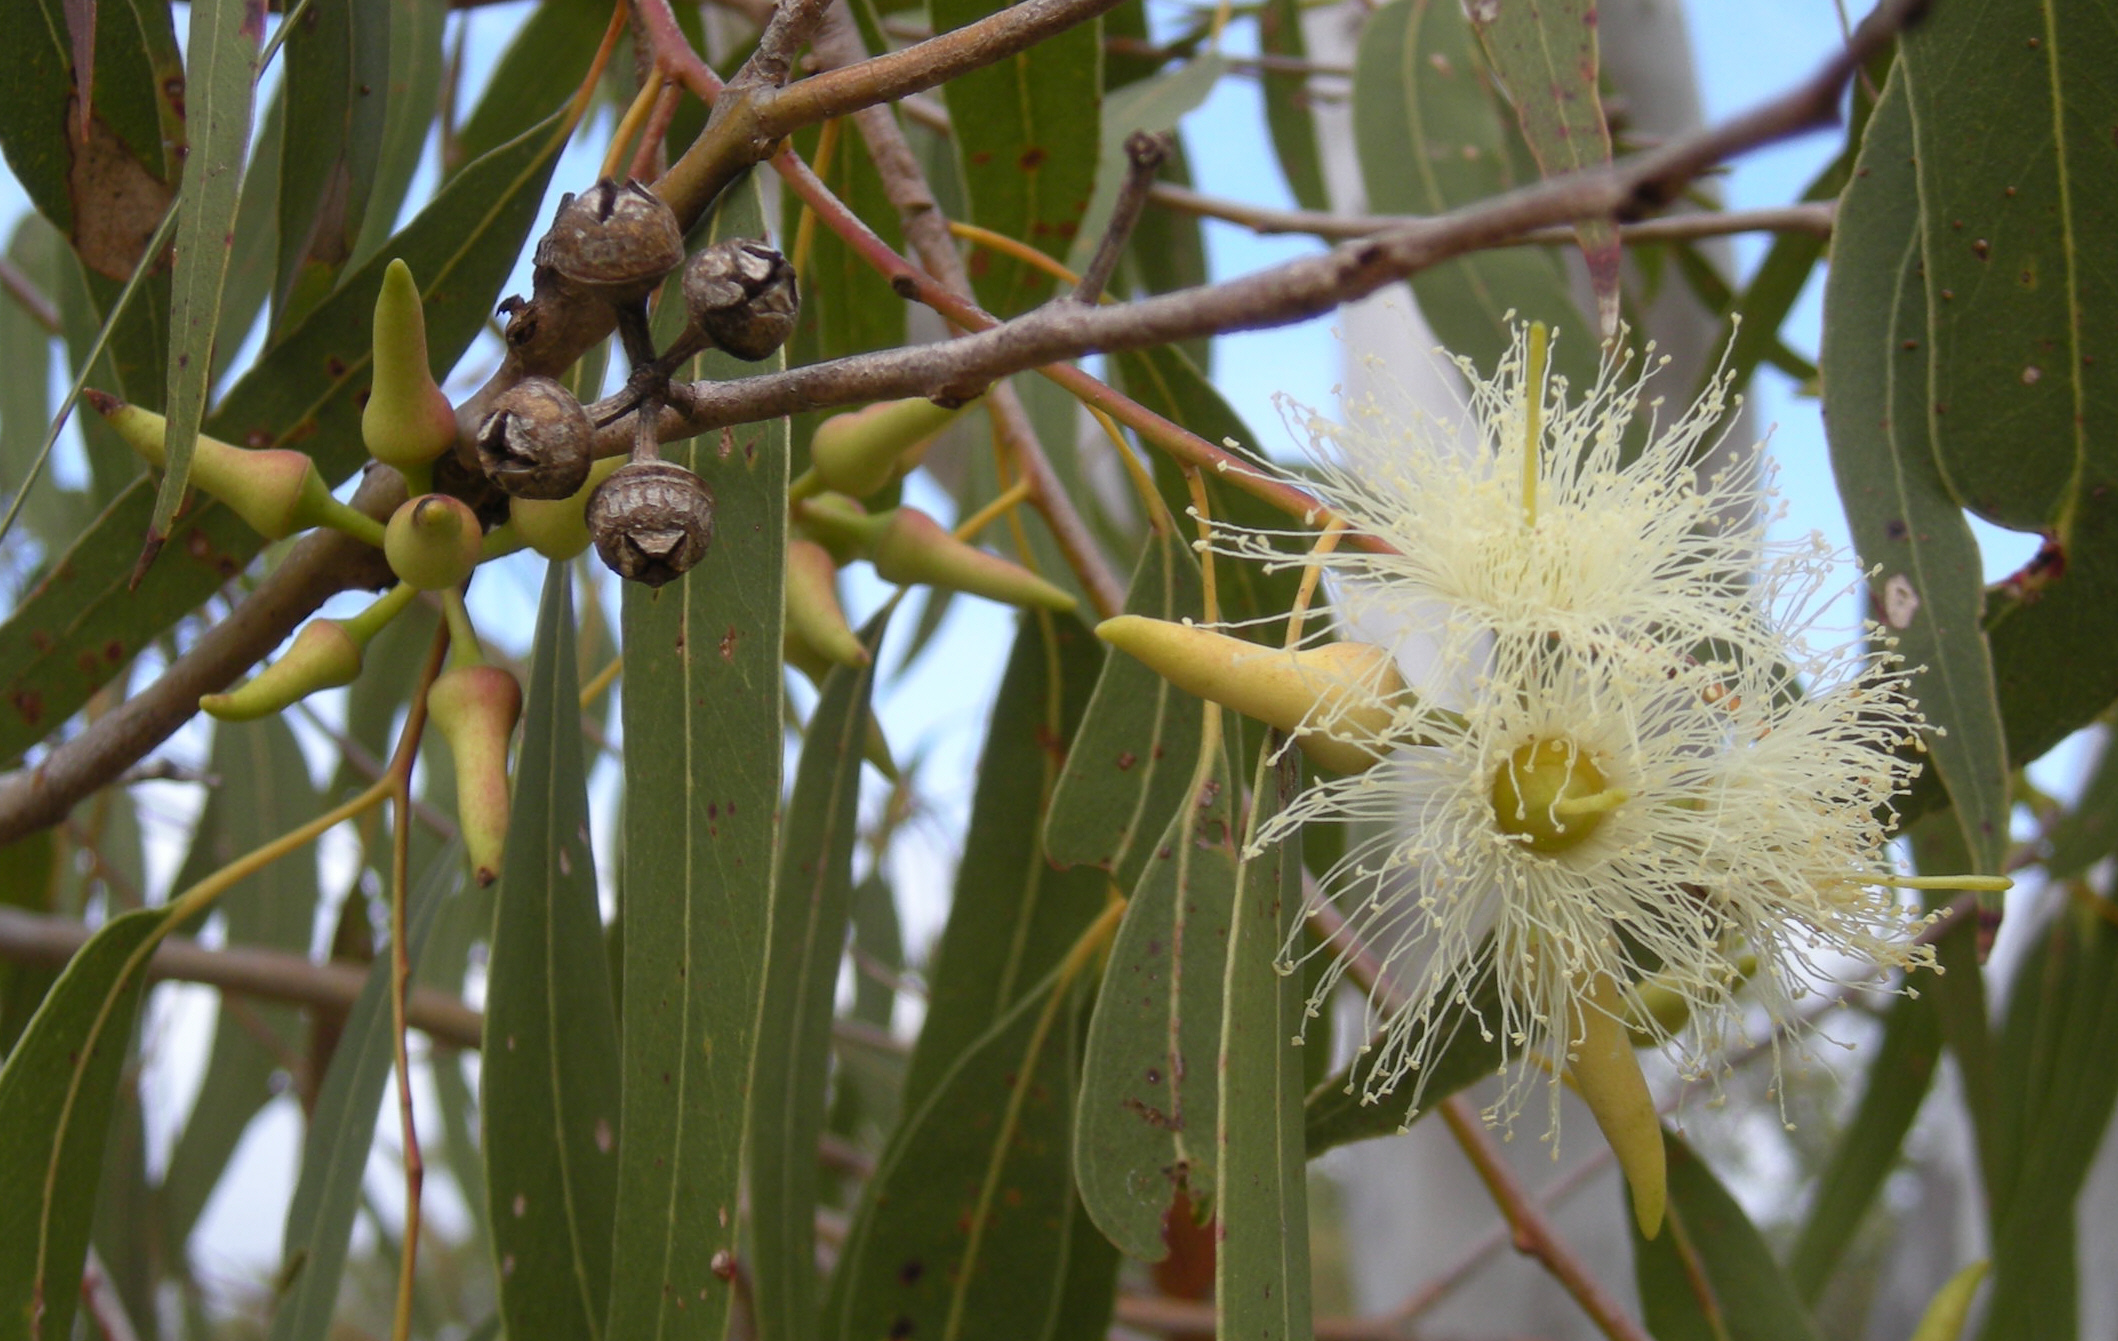 Eucalyptus_tereticornis_flowers,_capsules,_buds_and_foliage